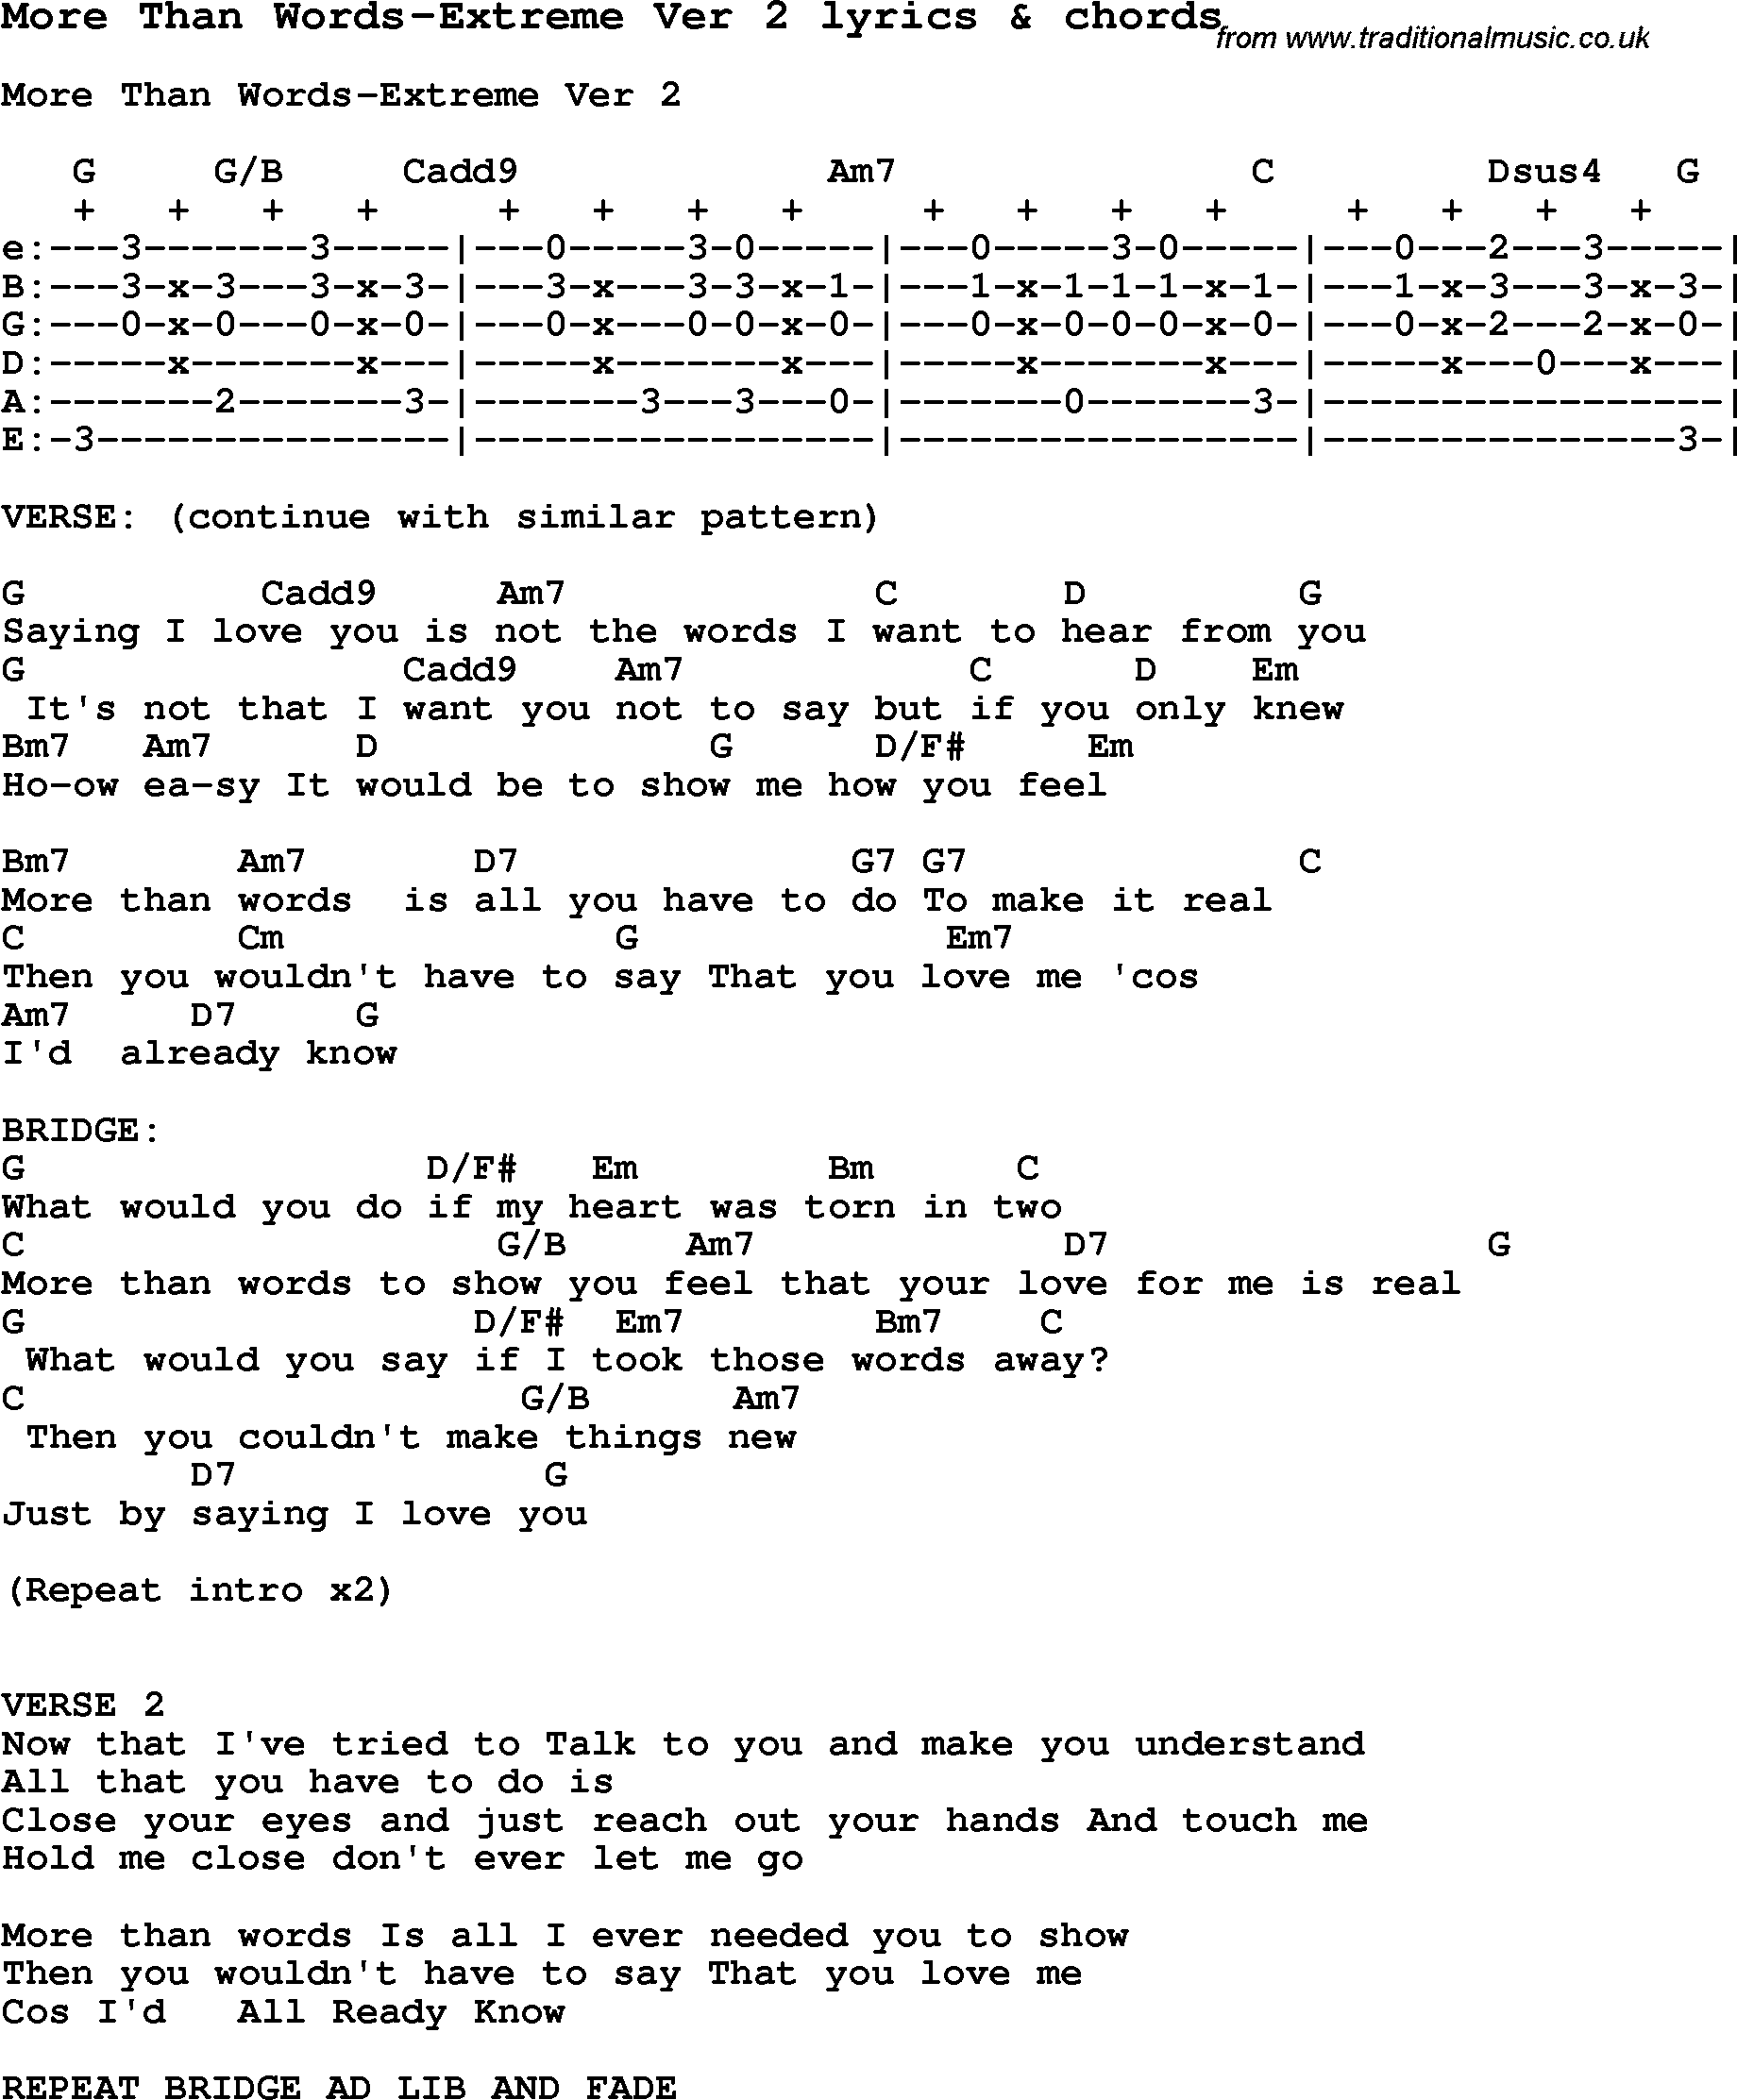 Love Song Lyrics For More Than Words Extreme Ver 2 With Chords For